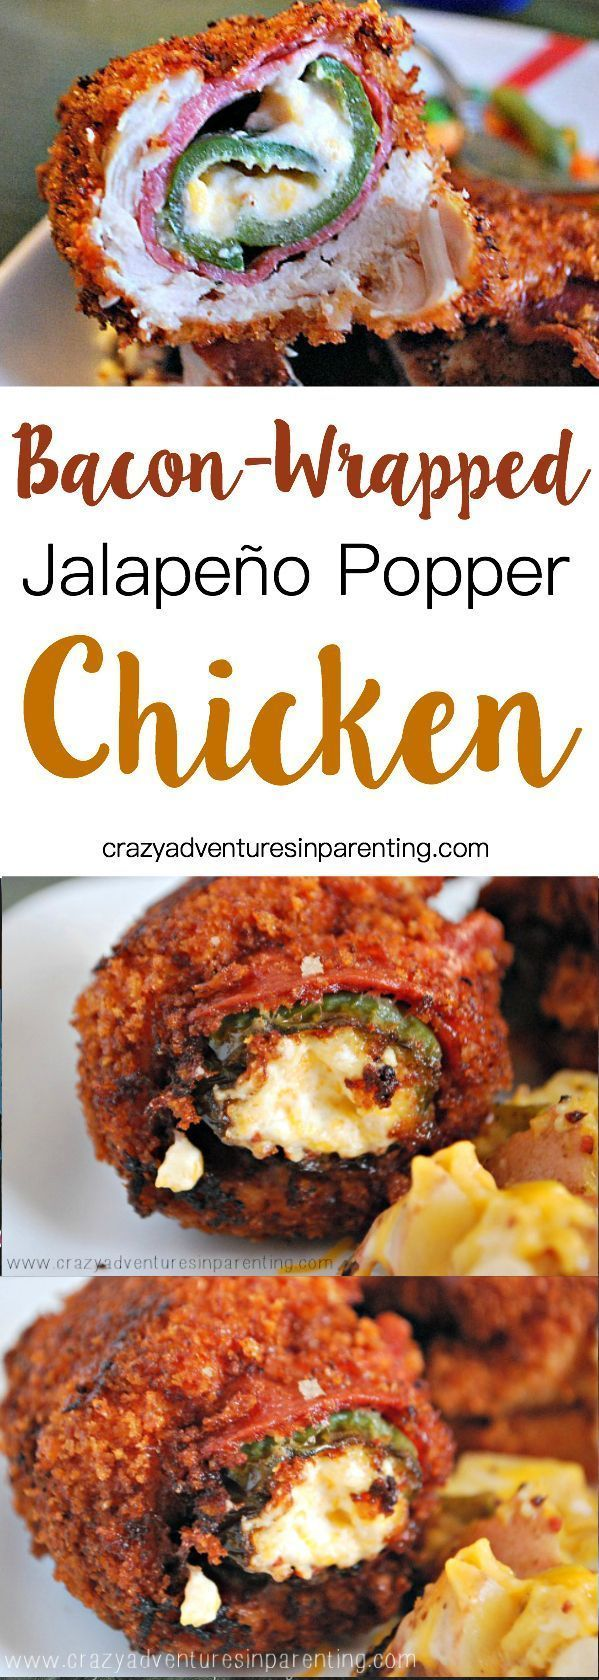 Bacon-Wrapped Jalapeno Popper Chicken